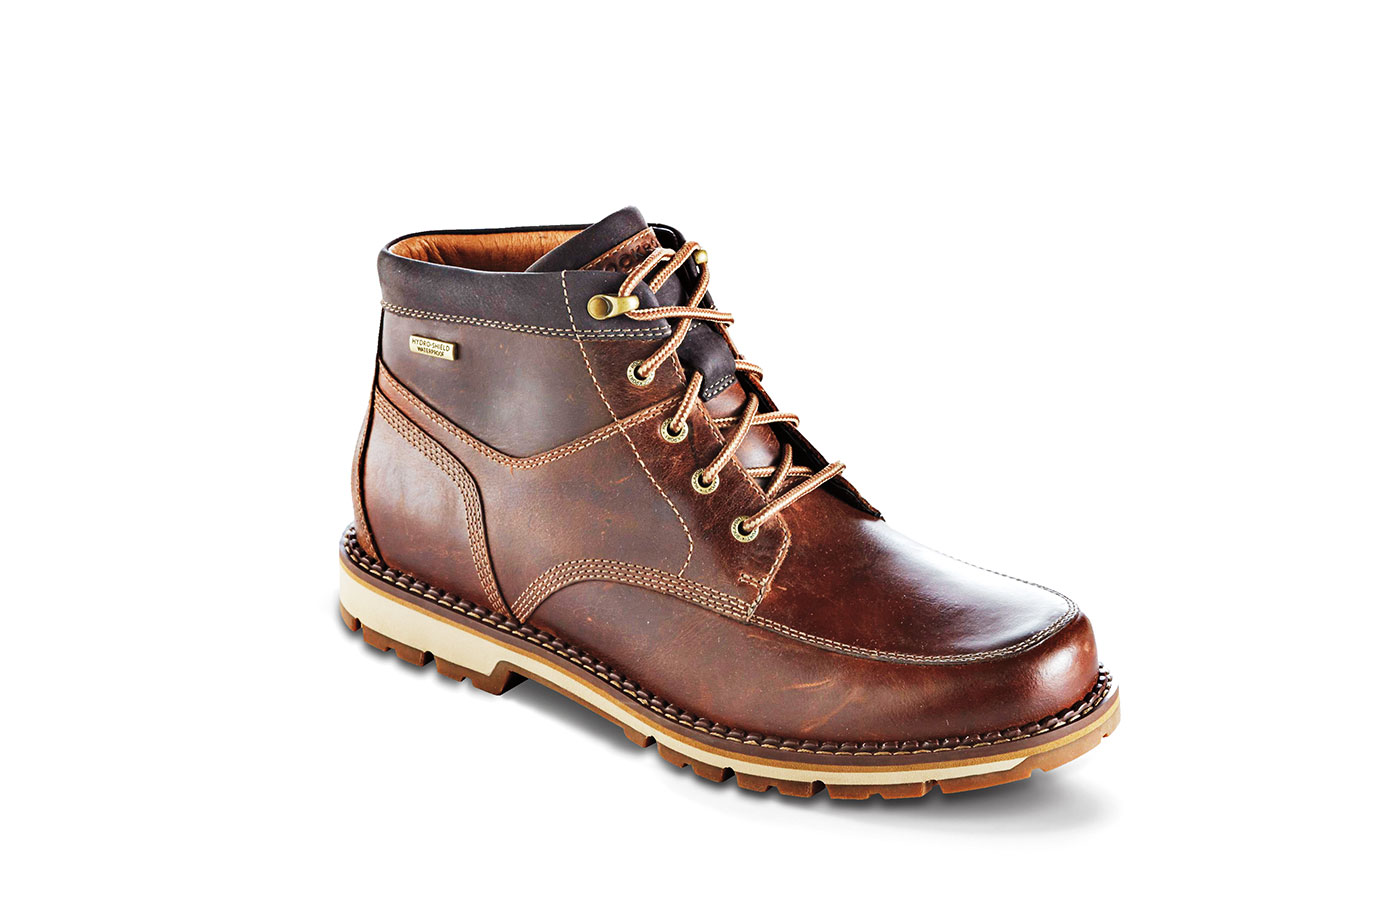 5 Stylish Hiking Boots You Can Wear on the Street - Men s Journal c7173aaf7